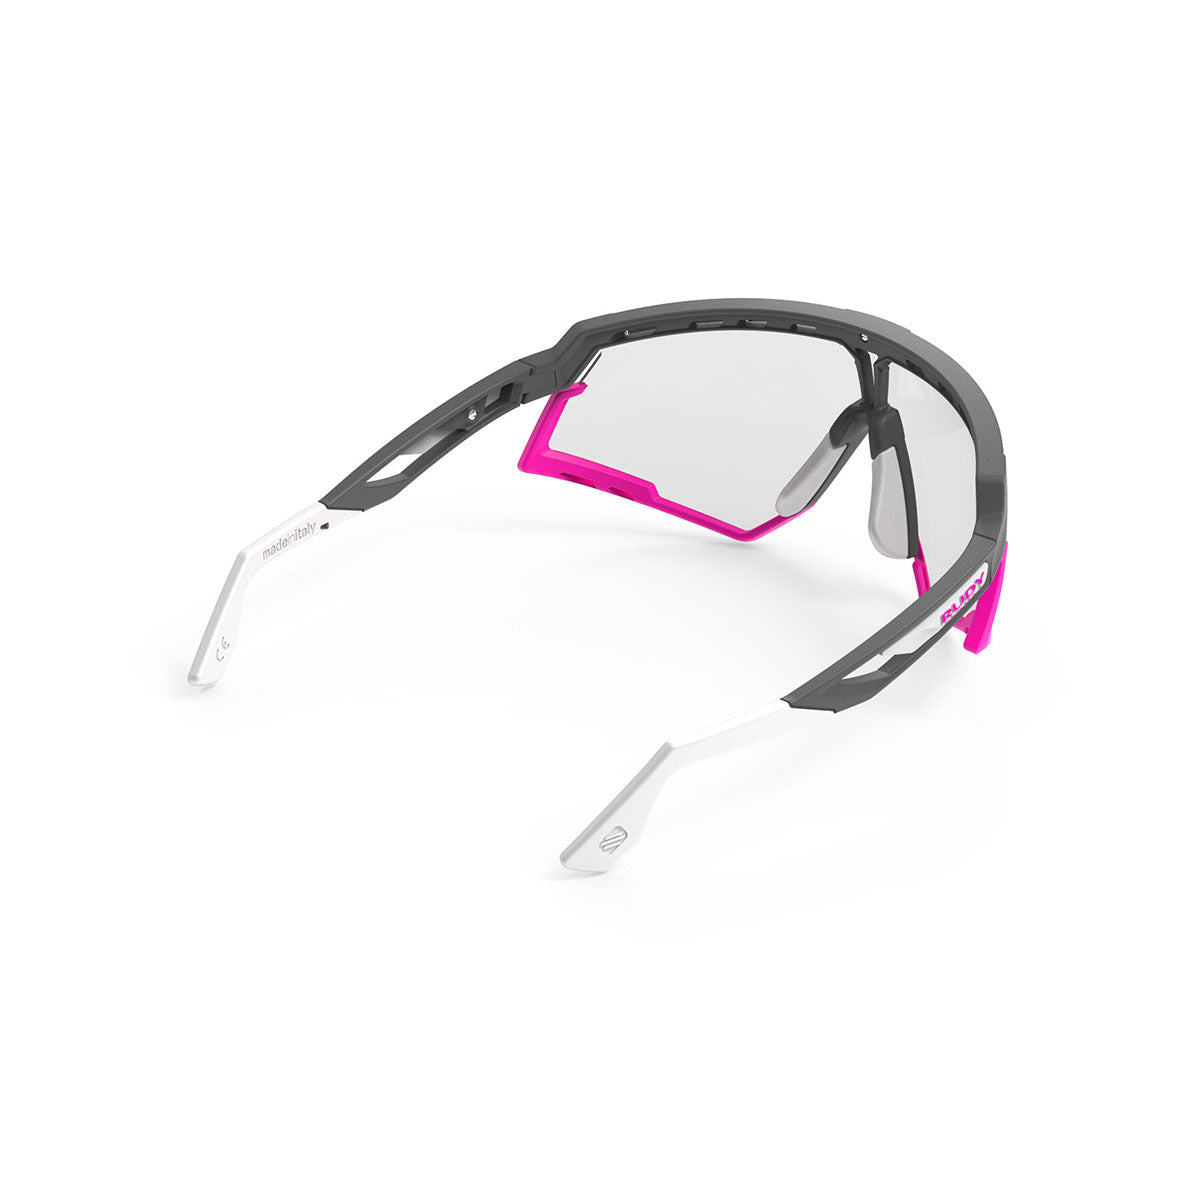 Rudy Project - Defender - frame color: Pyombo Matte - lens color: ImpactX-2 Photochromic Clear to Black - Bumper Color: Fuxia - photo angle: Top Back Angle Variant Hover Image